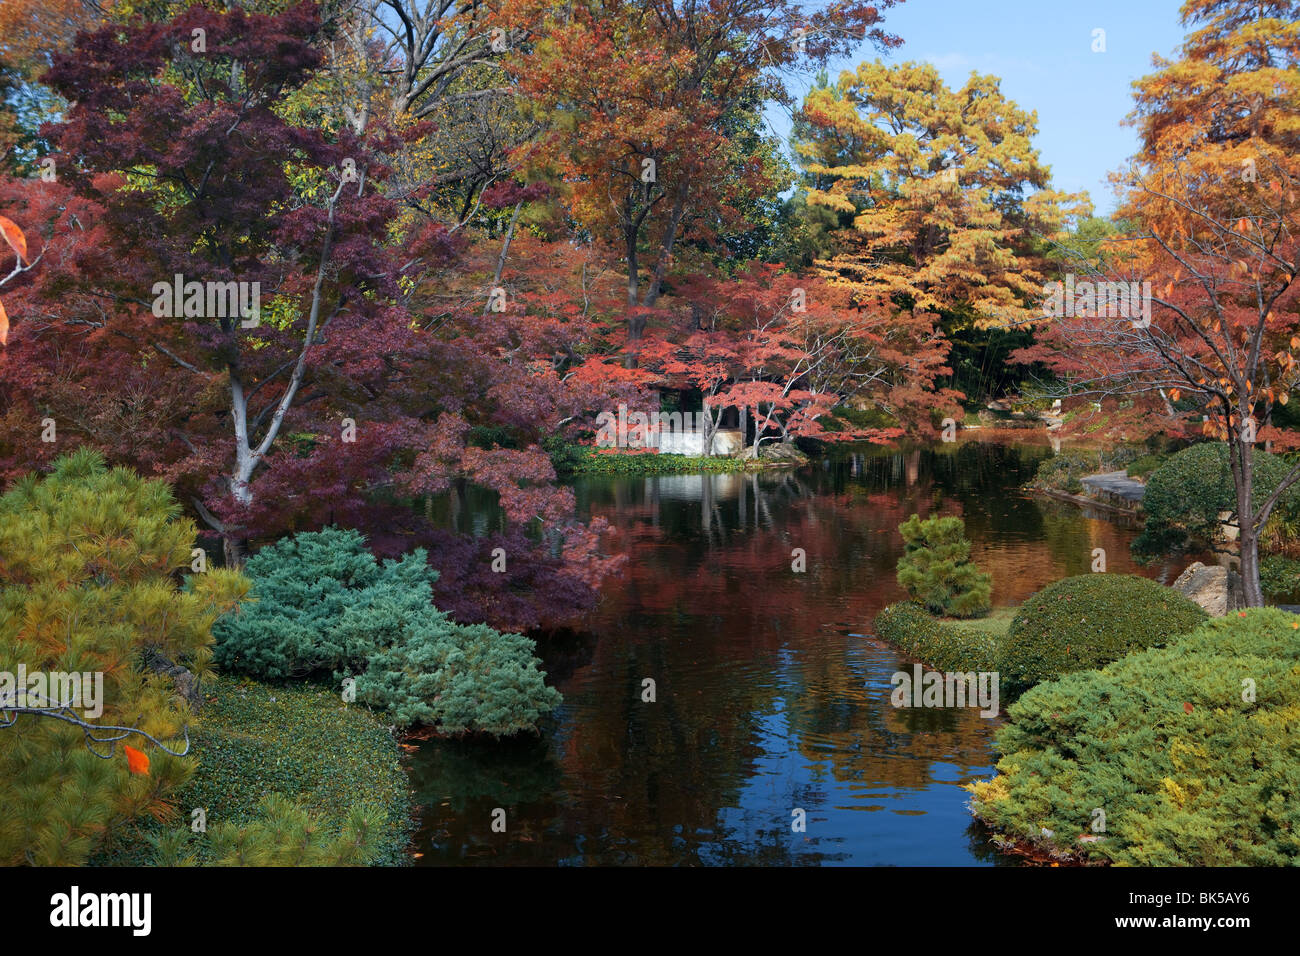 Fall Colors In A Garden Japanese Garden Fort Worth Texas Usa Stock Photo Royalty Free Image